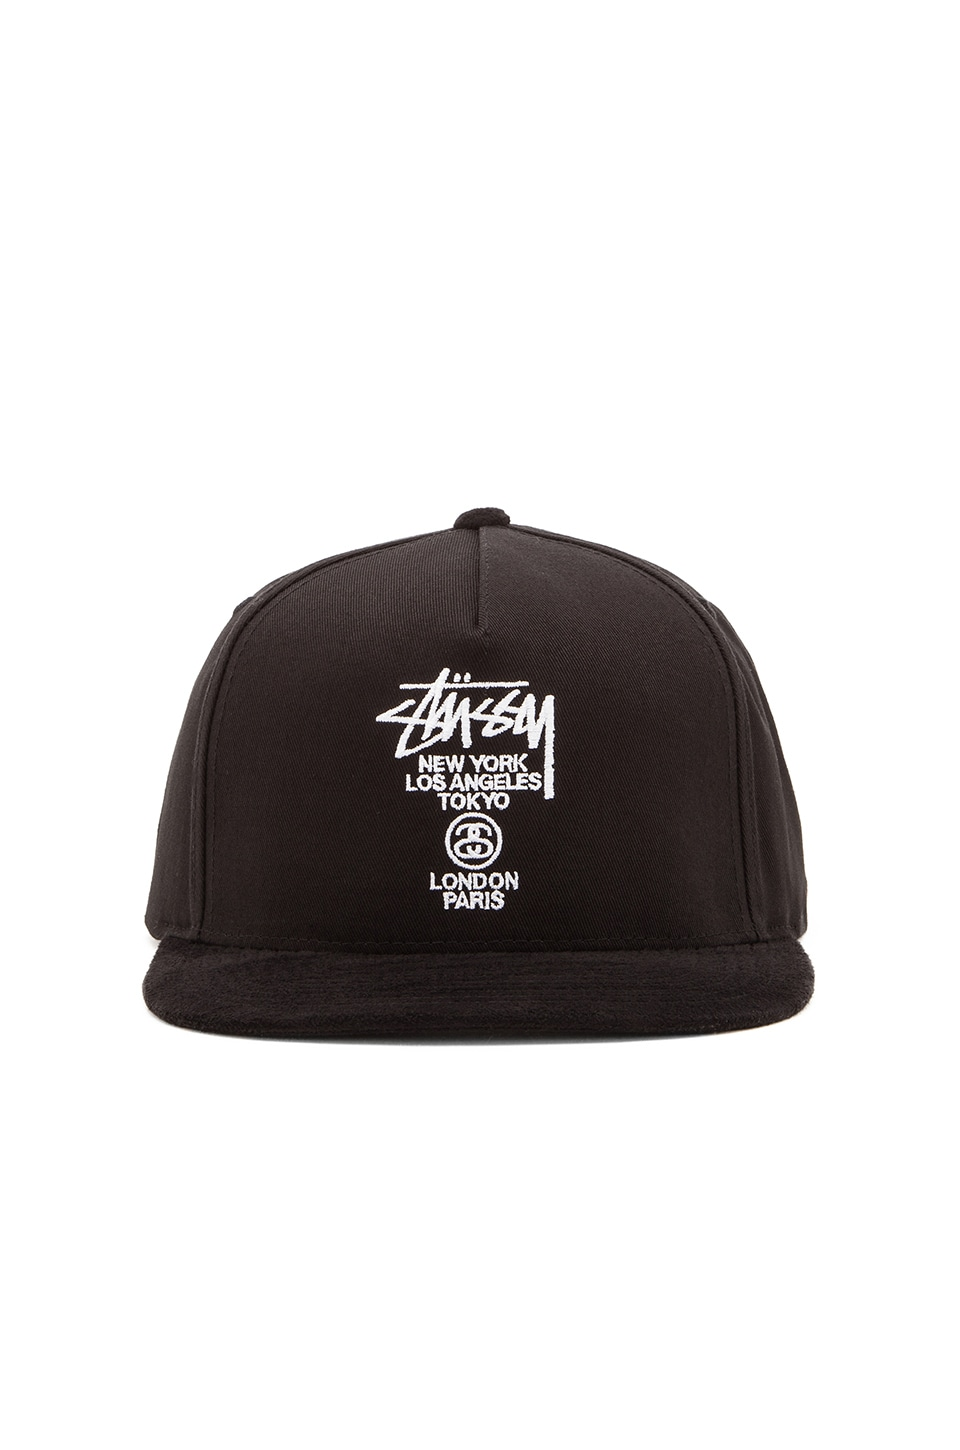 156e18954a6 Stussy World Tour Snapback in Black